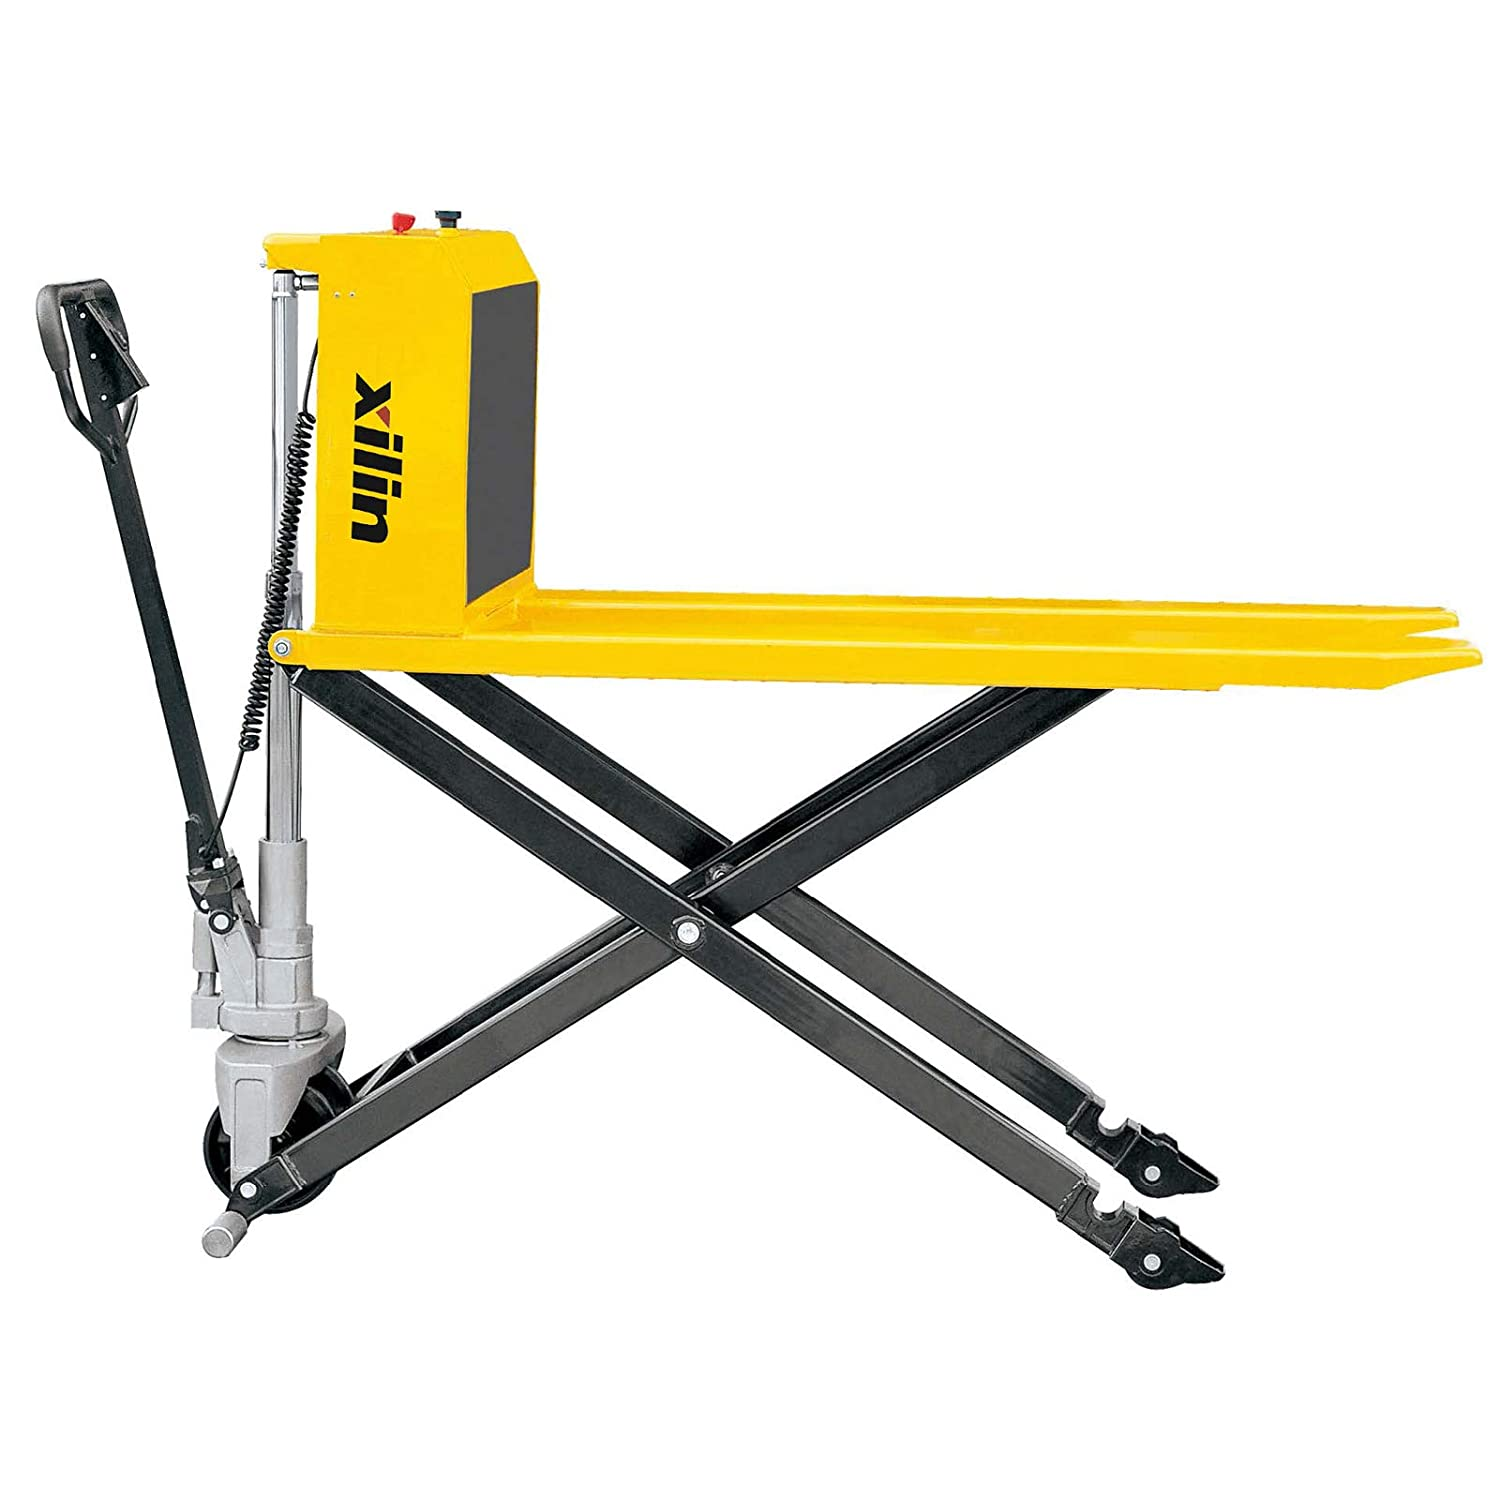 Xilin Electric Powered Direct Limited time sale sale of manufacturer High Lift Truck Pallet Jack Material